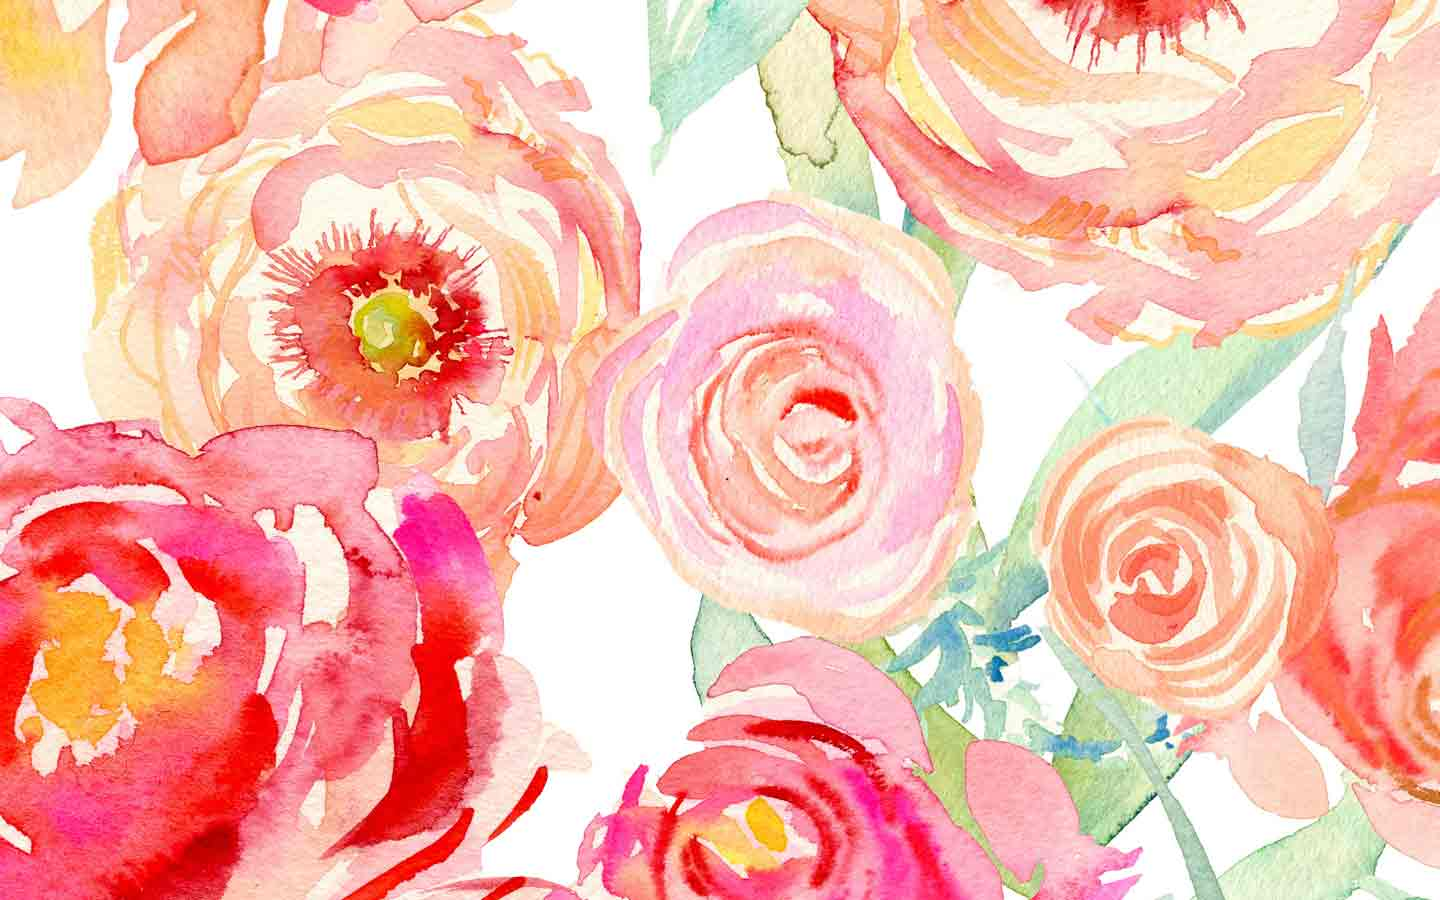 Free Download Watercolor Floral Wallpaper Watercolor Flower